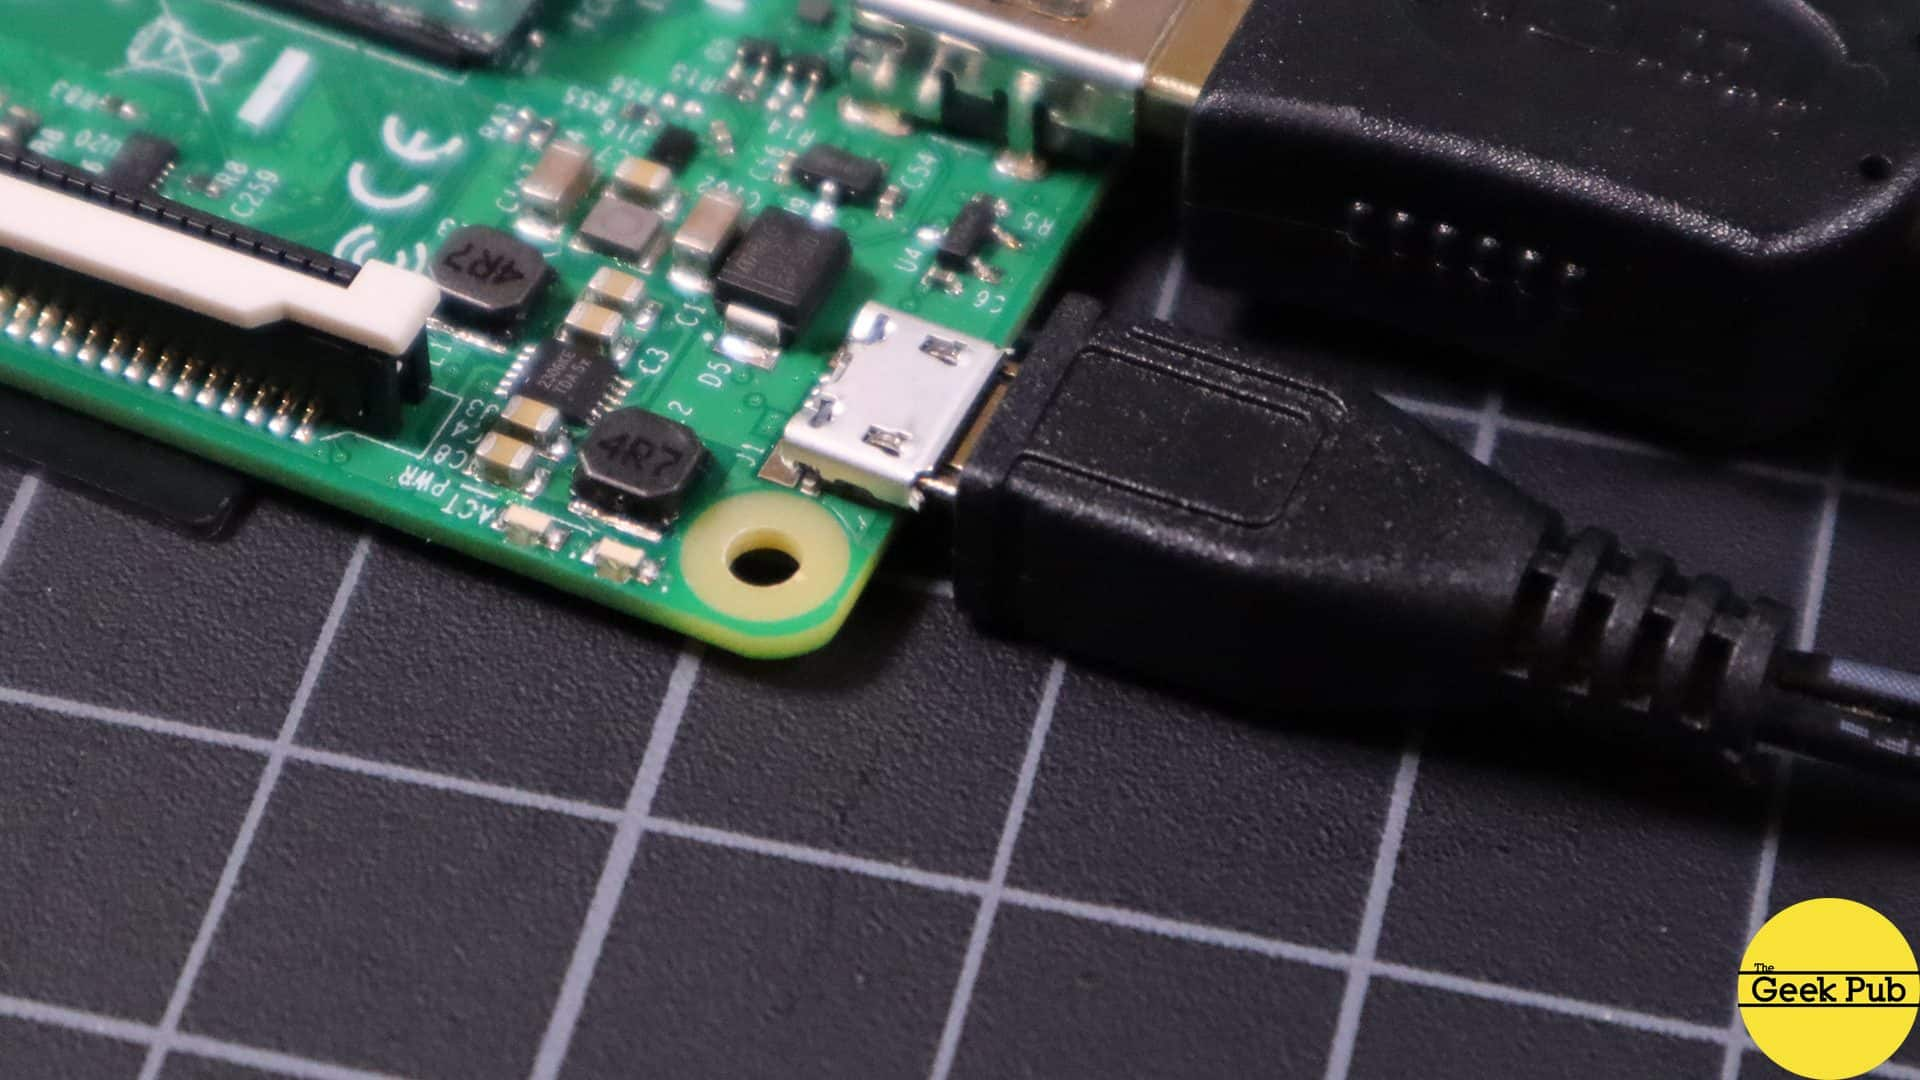 connect the micro USB power cable